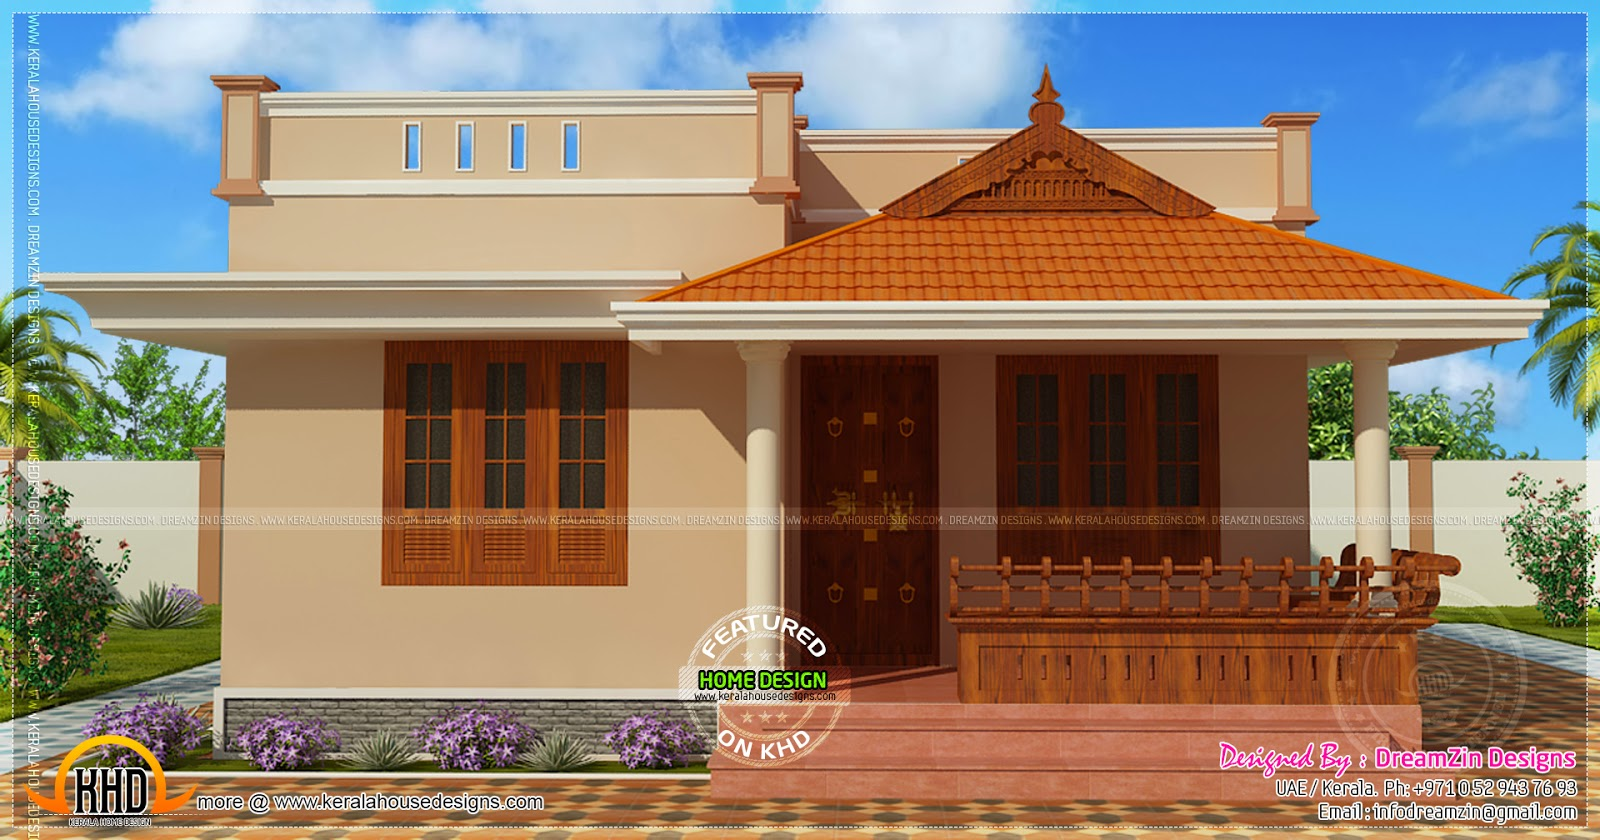 35 small and simple but beautiful house with roof deck for Model house photos in indian